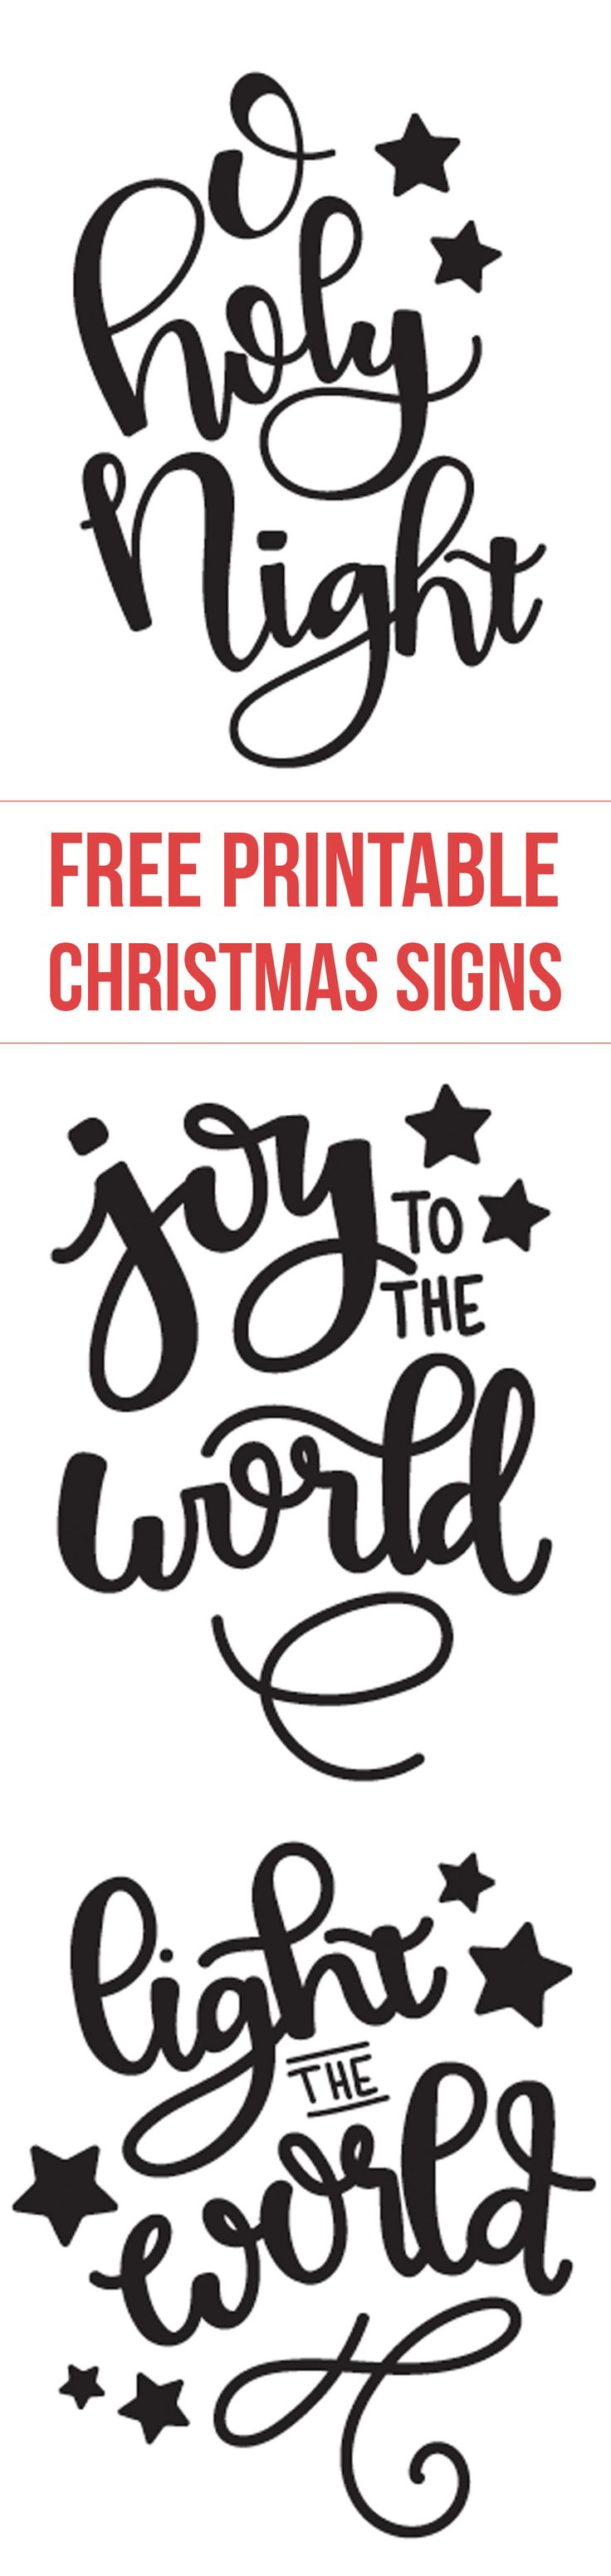 photograph about Printable Christmas Signs known as absolutely free printable xmas signs and symptoms -